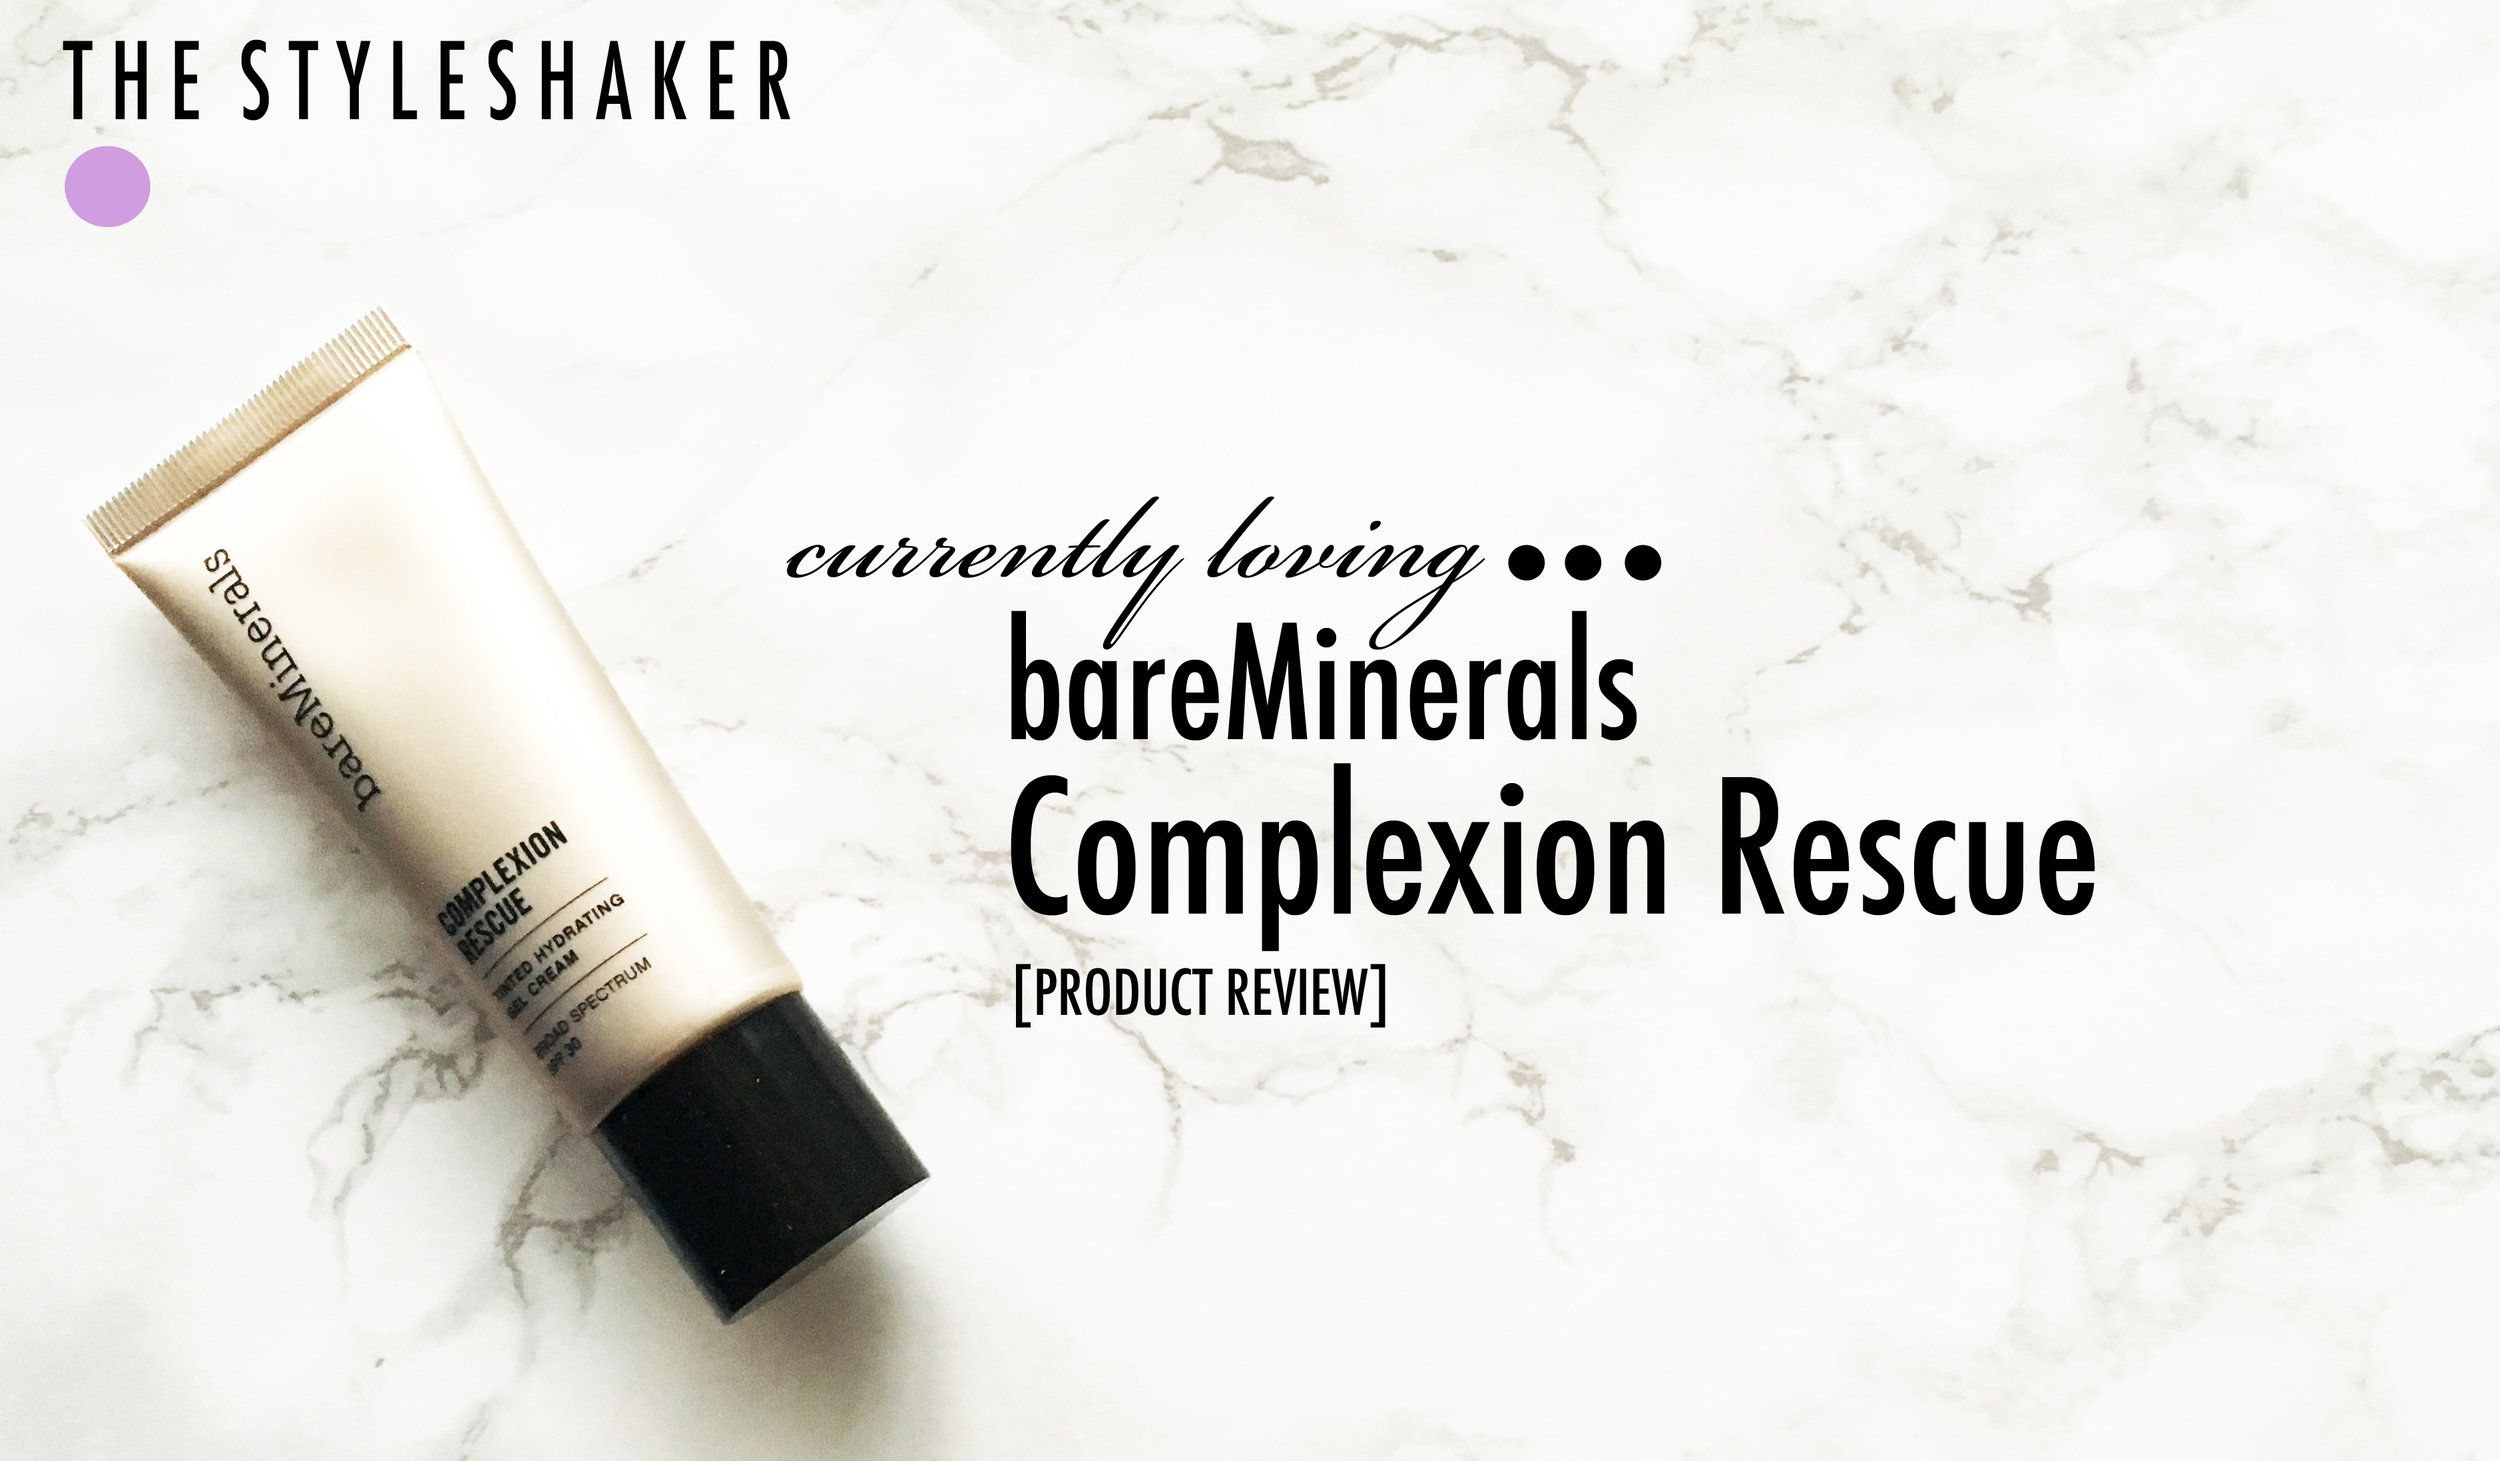 Product review for bareMinerals Complexion Rescue